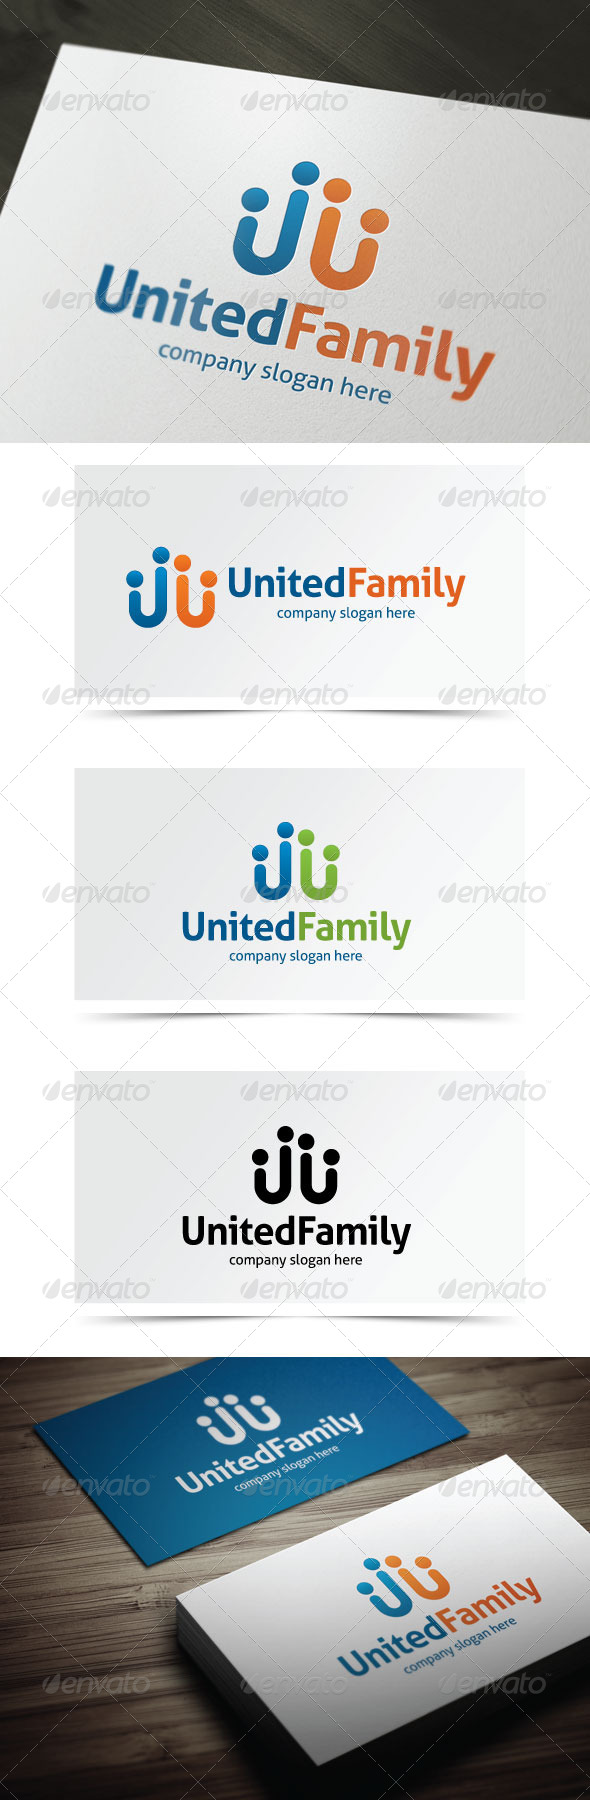 GraphicRiver United Family 5506894